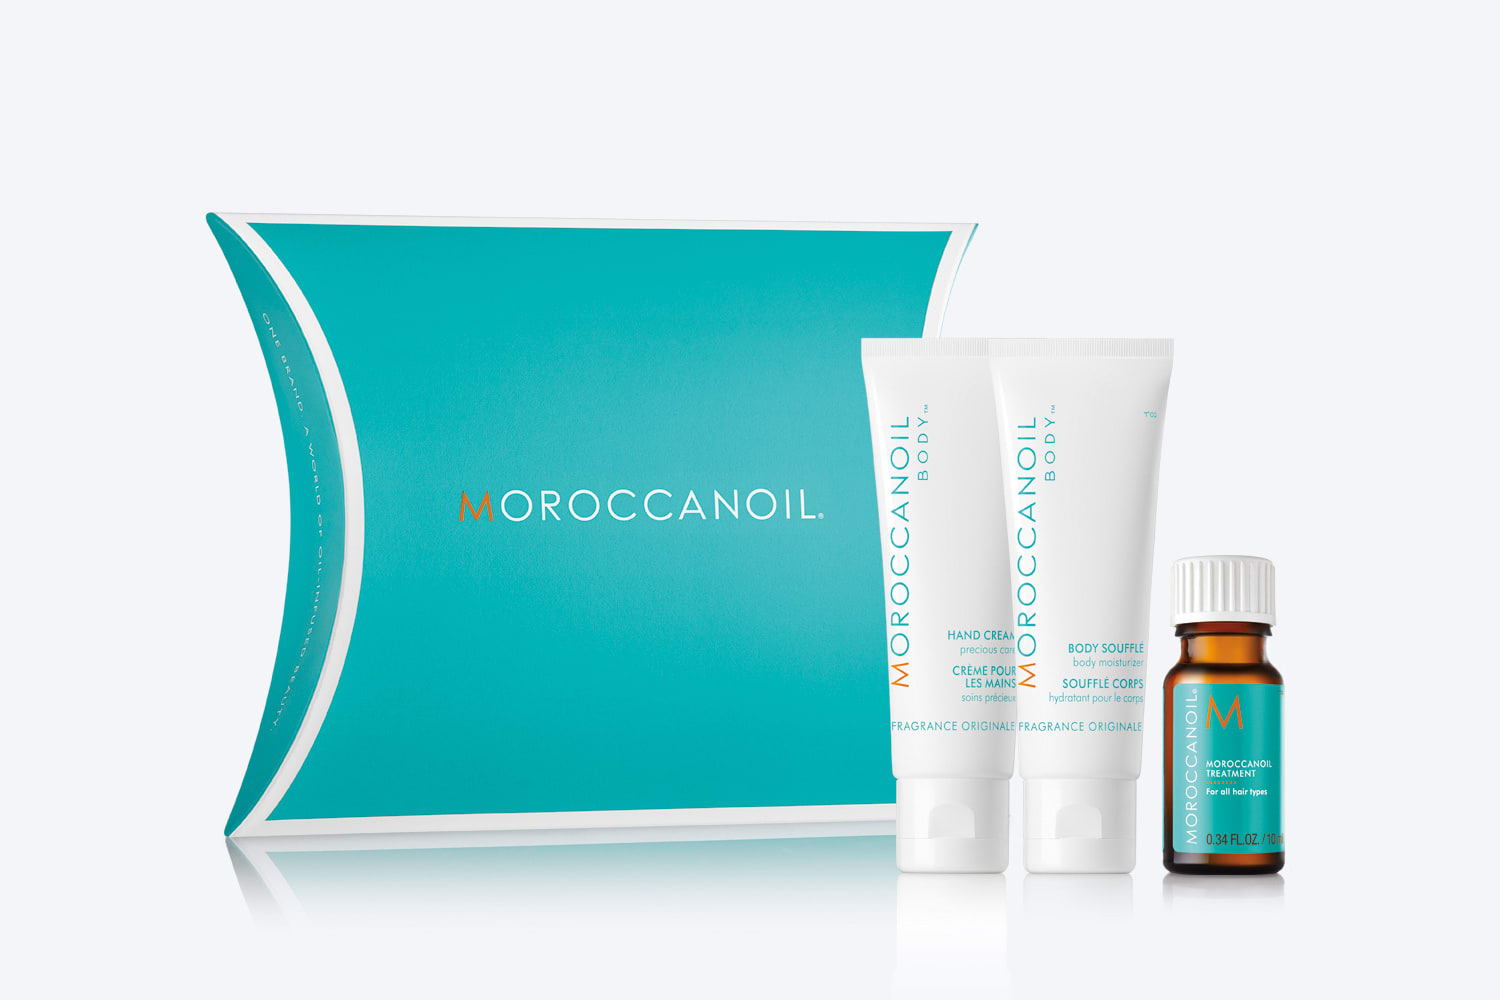 Moroccanoil Packaging